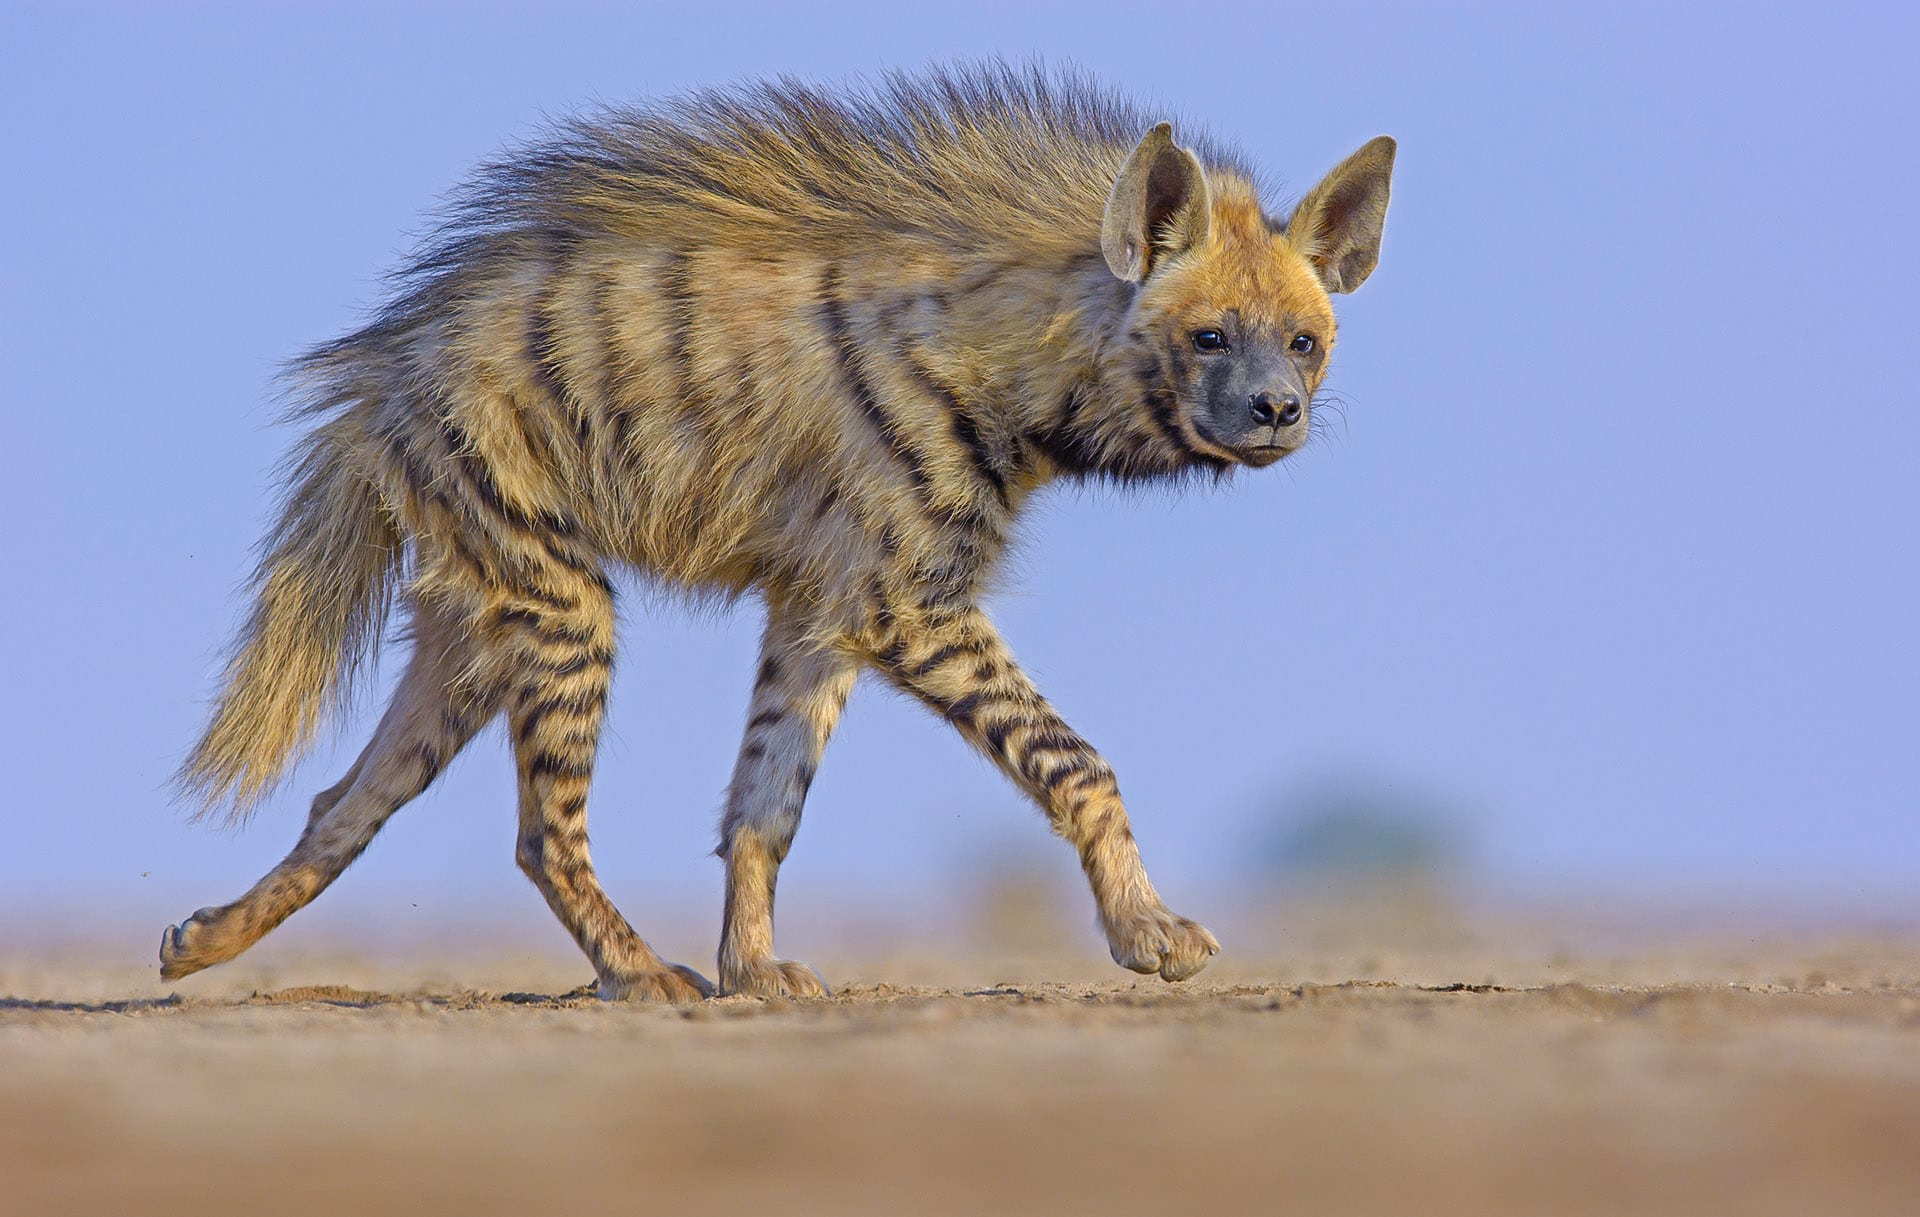 "Unlike the desert fox, the striped hyena relies largely on scavenged meat to survive. These skulking predators are vilified by many cultures but are an integral part of this habitat. They play the role of waste managers, thereby reducing the chance of disease that breeds in decomposing meat. Of late, these animals too have been suffering at the hands of free-ranging dogs, that monopolise carcasses of livestock dumped on the fringes of village areas. Striped hyenas are classified as ""near threatened"" by the IUCN."